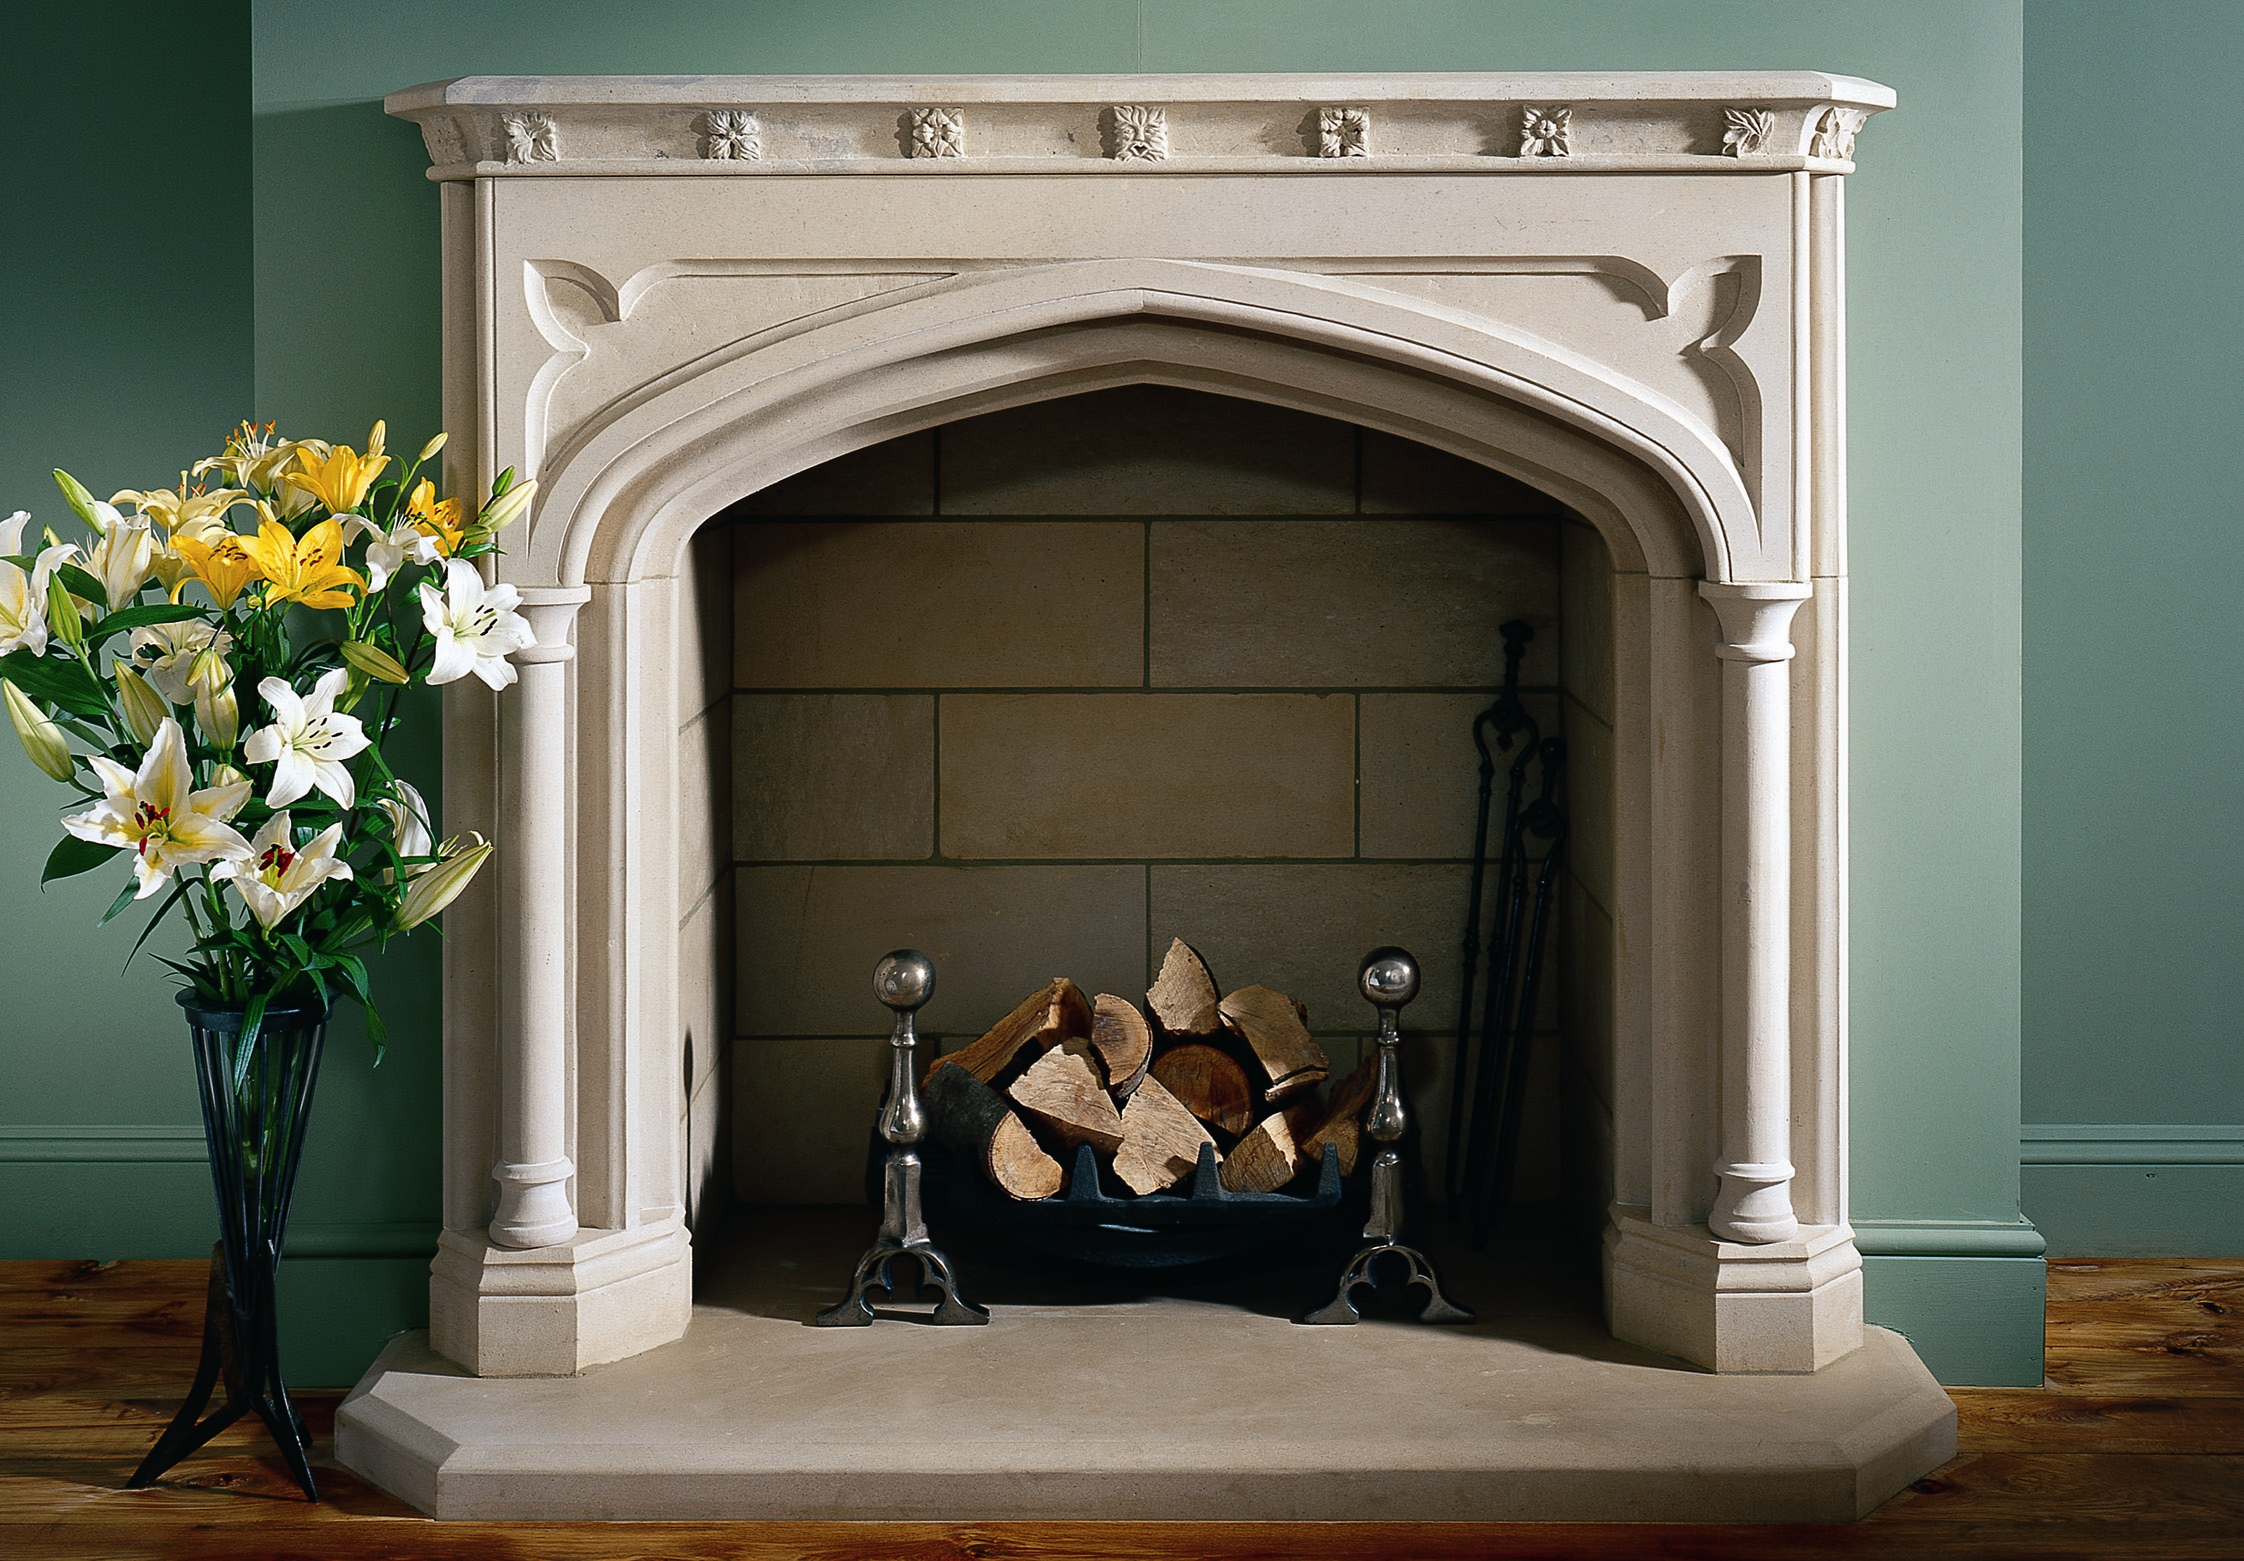 11. Gothic revival style fireplace in Portland Basebed – Staffordshire